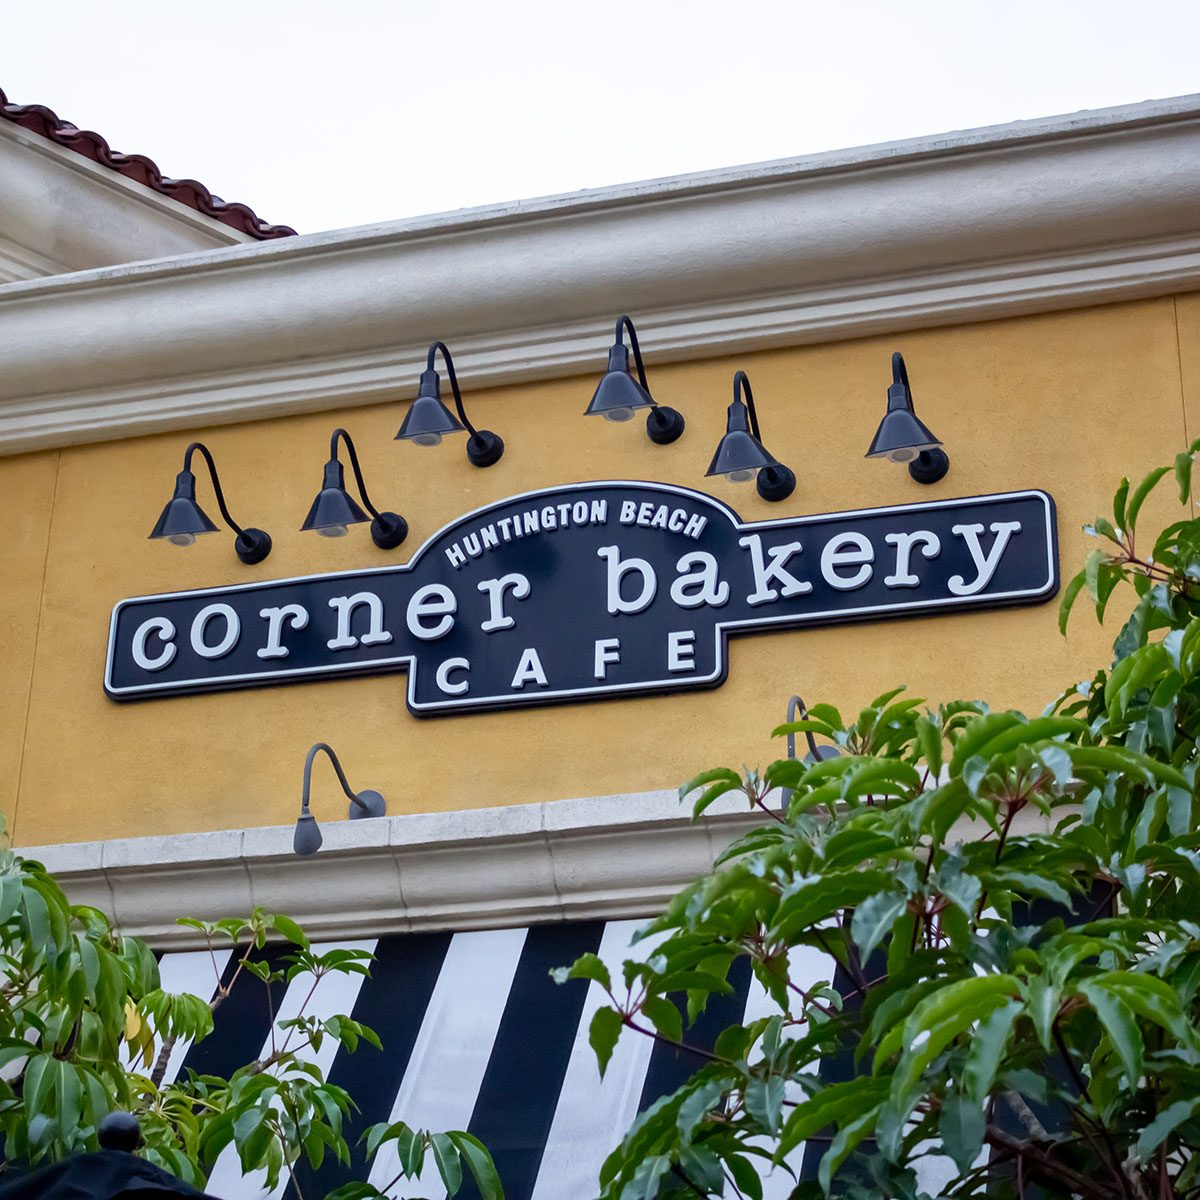 A store front sign for the restaurant known as Corner Bakery Cafe